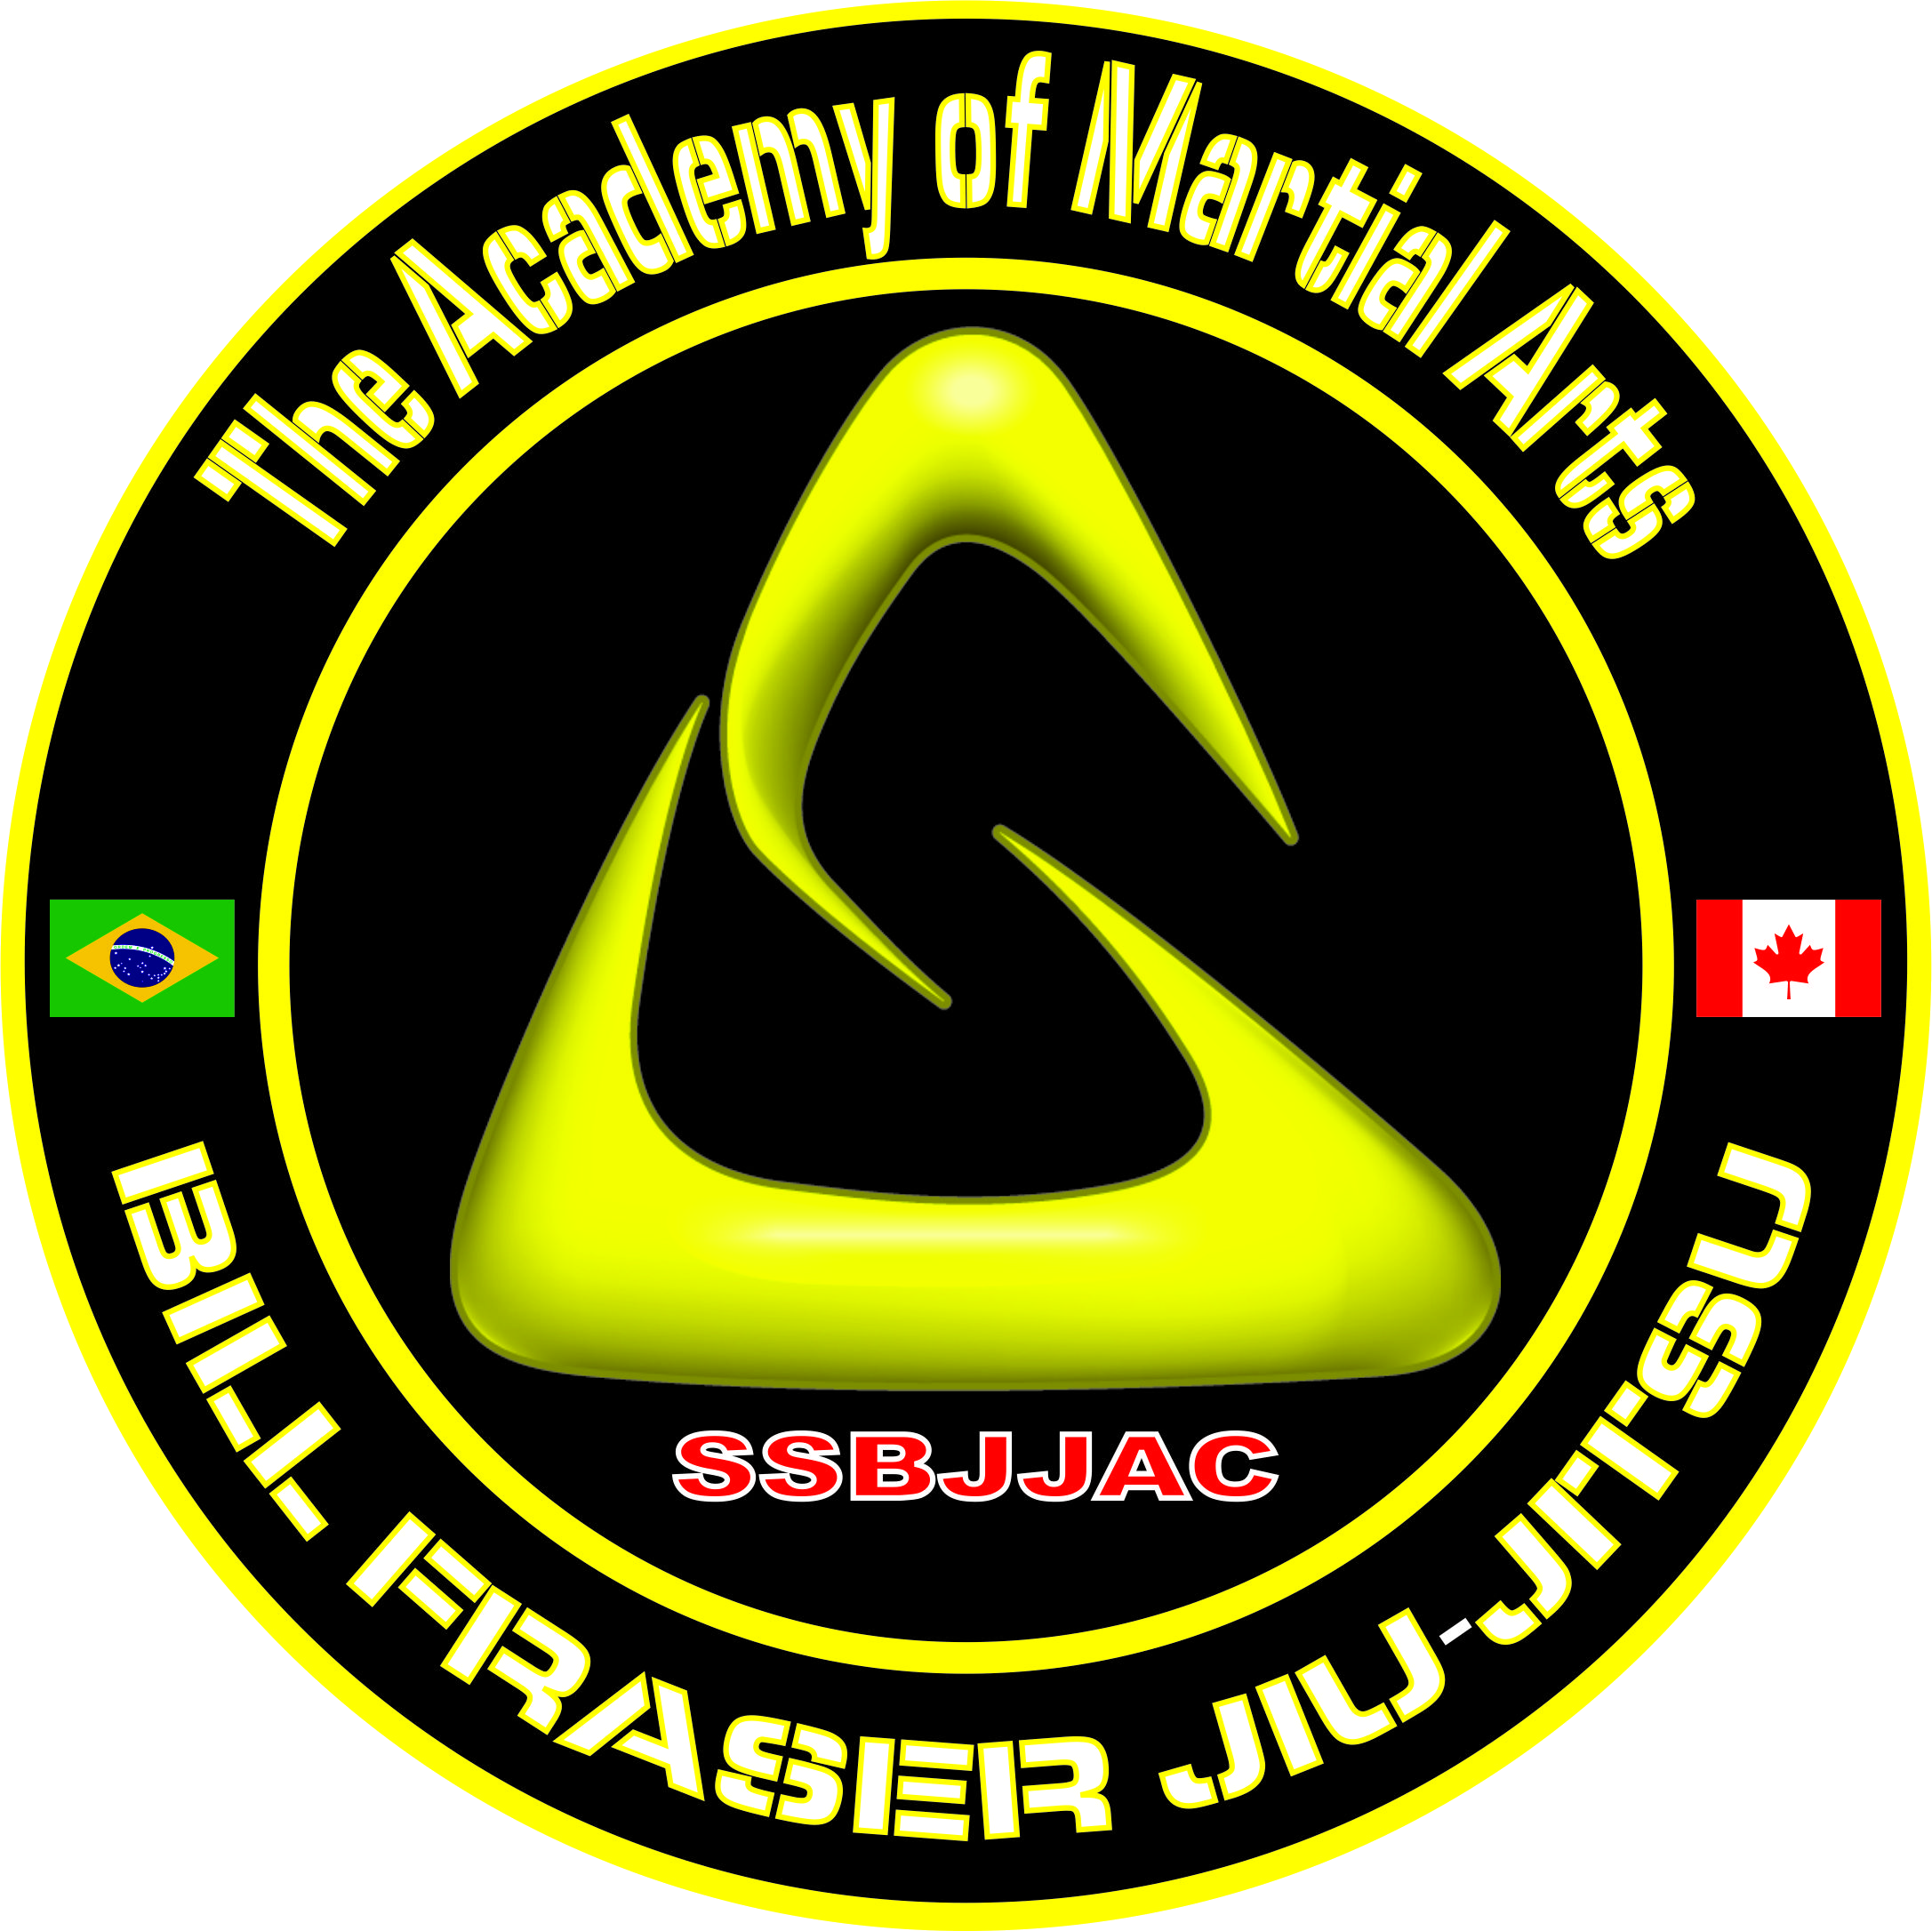 The Academy of Martial Arts